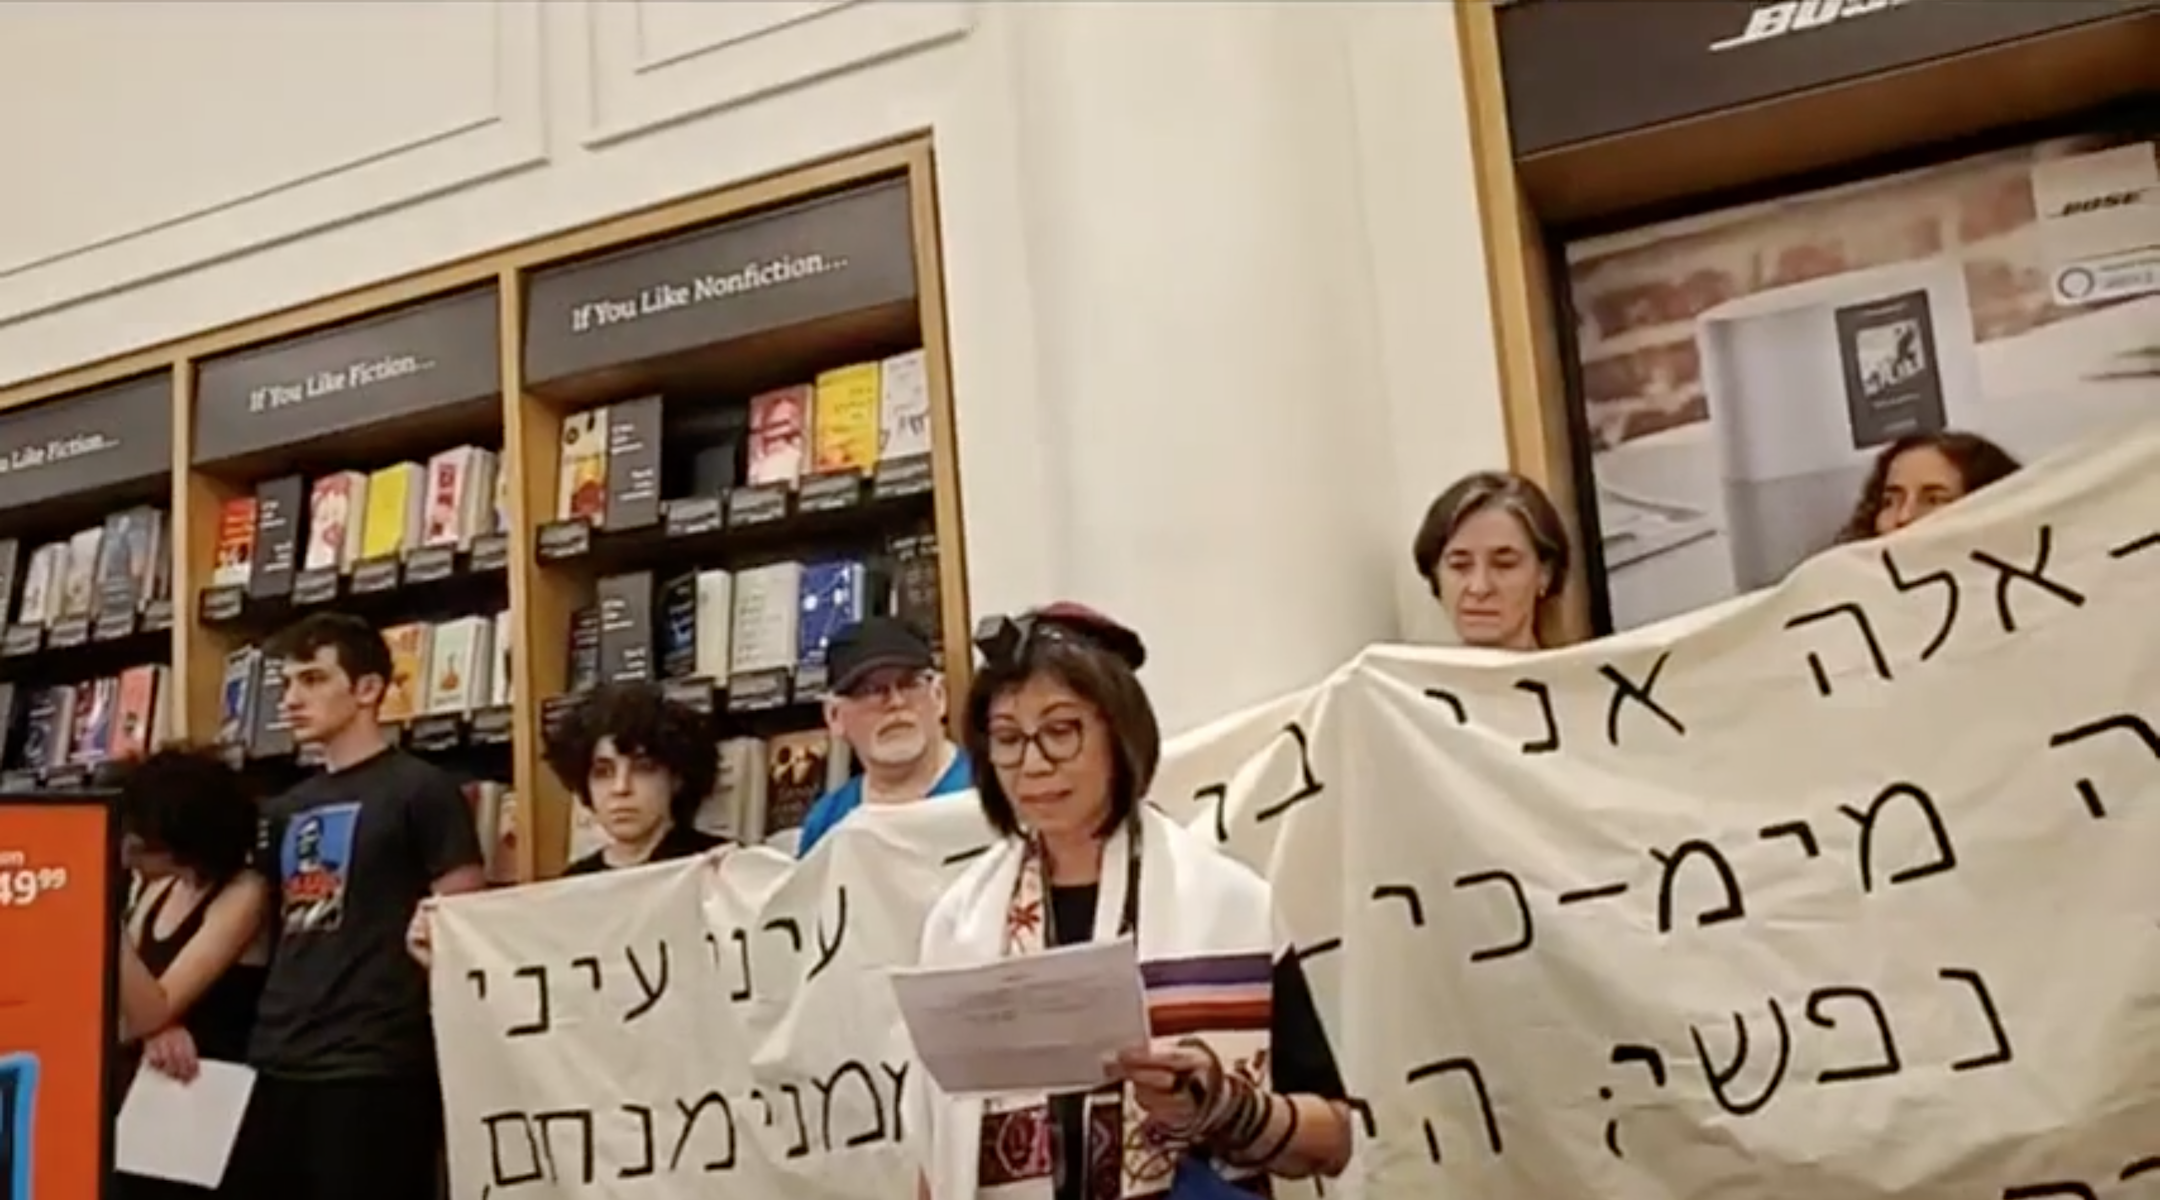 Rabbi Mira Rivera speaks at a Jewish protest against Amazon at one of the company's brick-and-mortar stores in New York City, Aug. 11, 2019. The protest was held on Tisha B'Av, a traditional Jewish day of mourning. Behind the speaker is a banner with a Hebrew quotation from the Book of Lamentations, which is traditionally read on Tisha B'Av. (Photo/JTA-Facebook video screenshot)